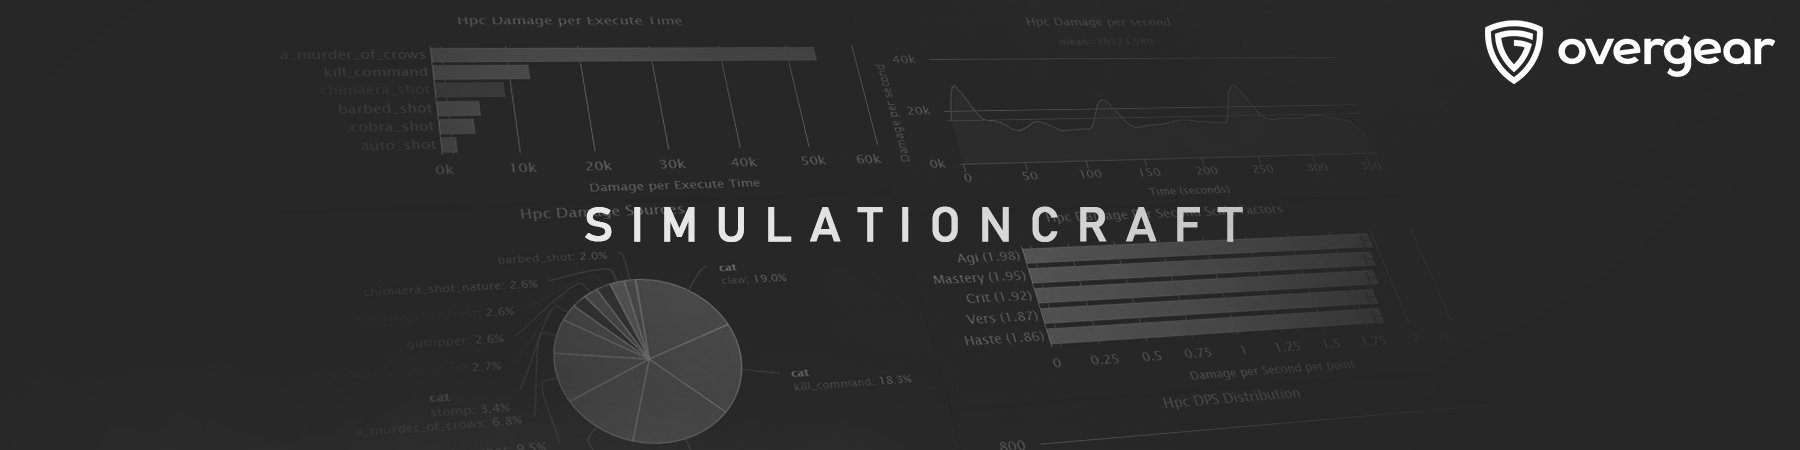 WoW SimulationCraft Full Guide - Overgear Guides